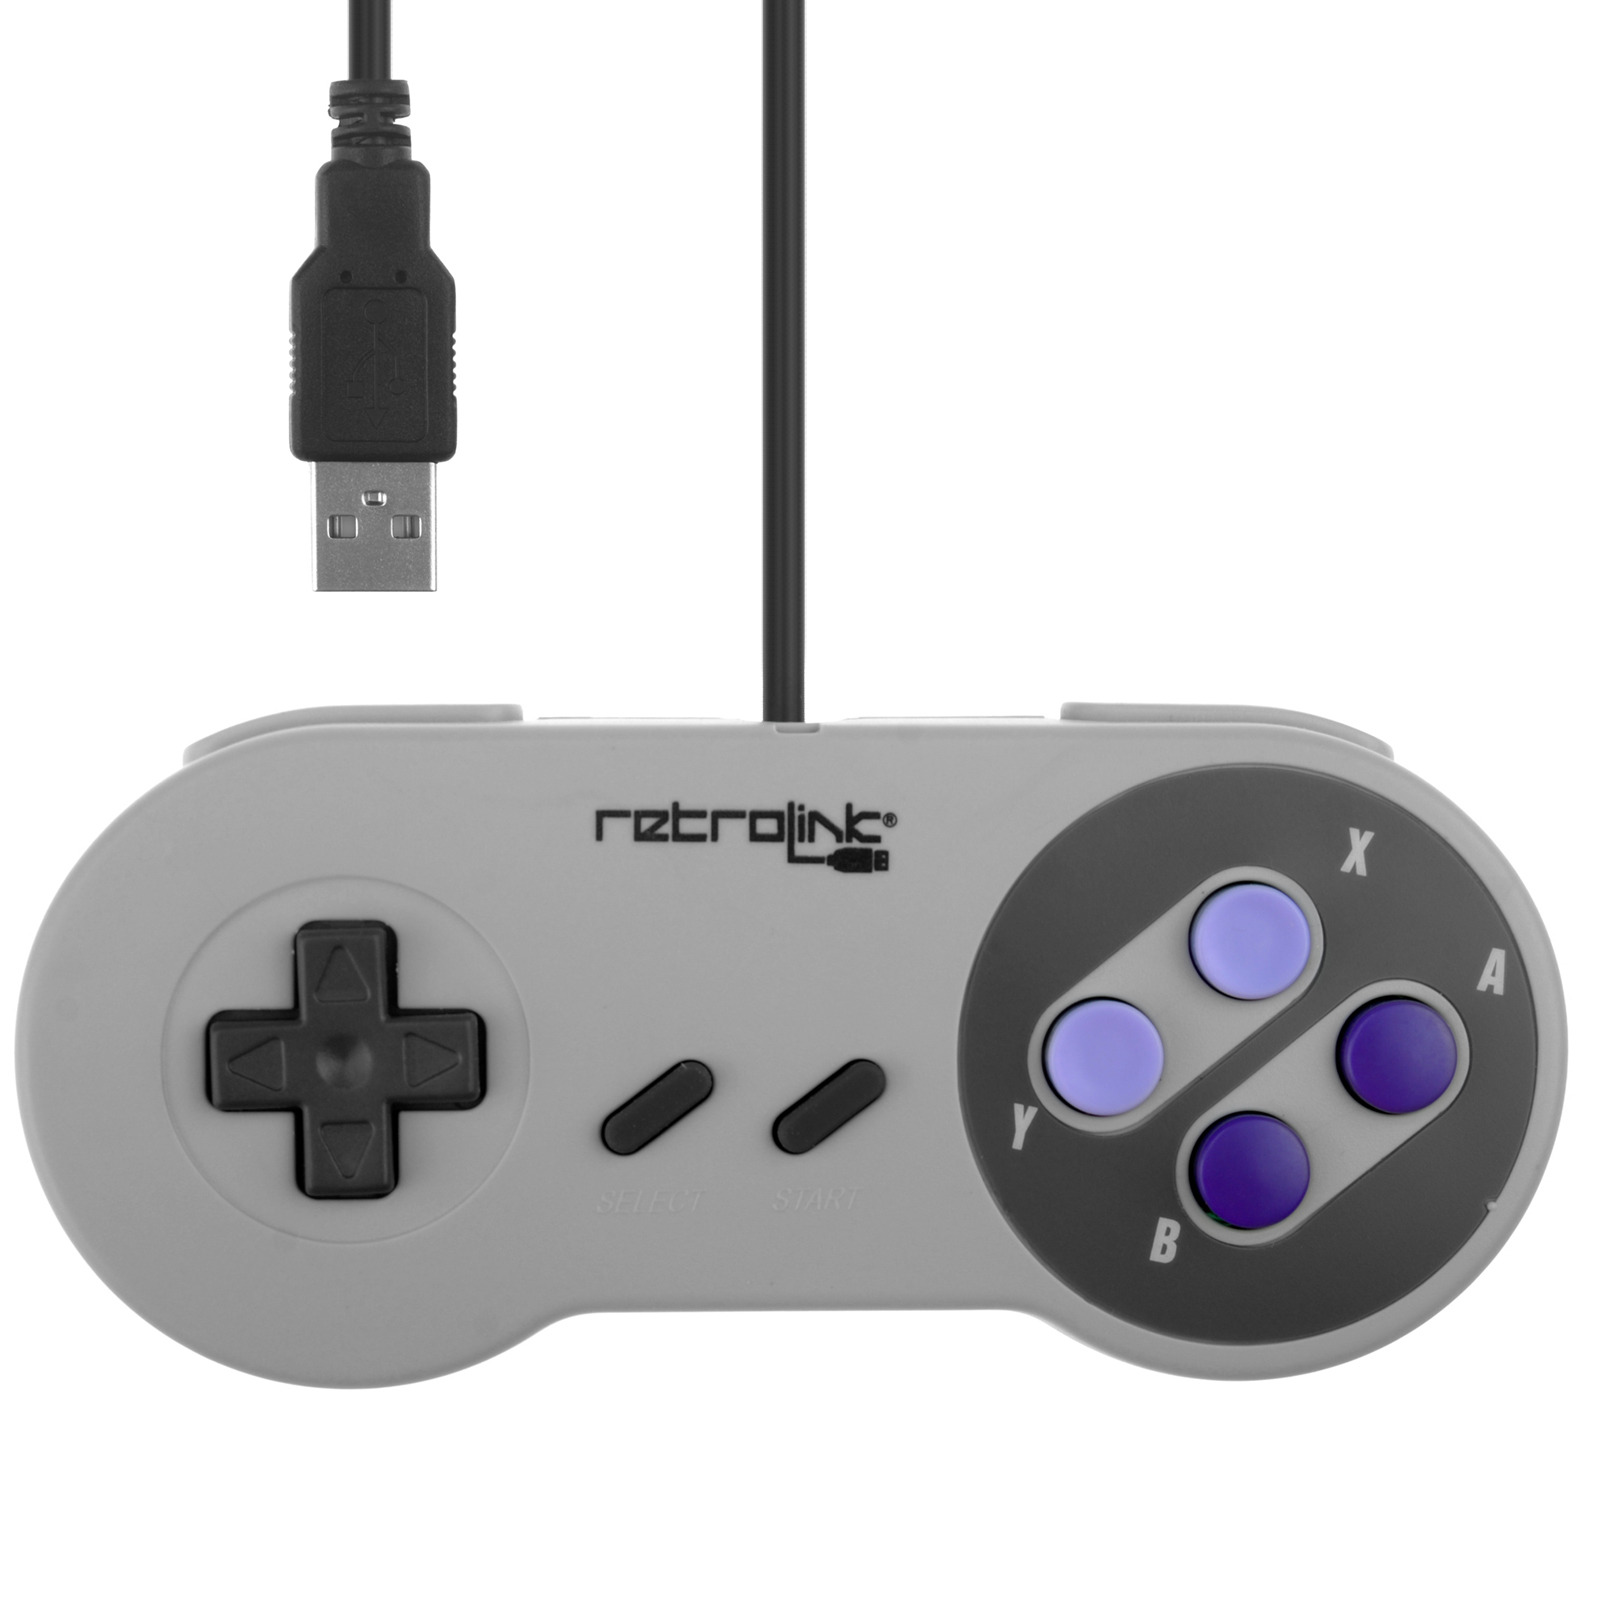 Original SNES Retrolink USB Controller, RB-PC-1392